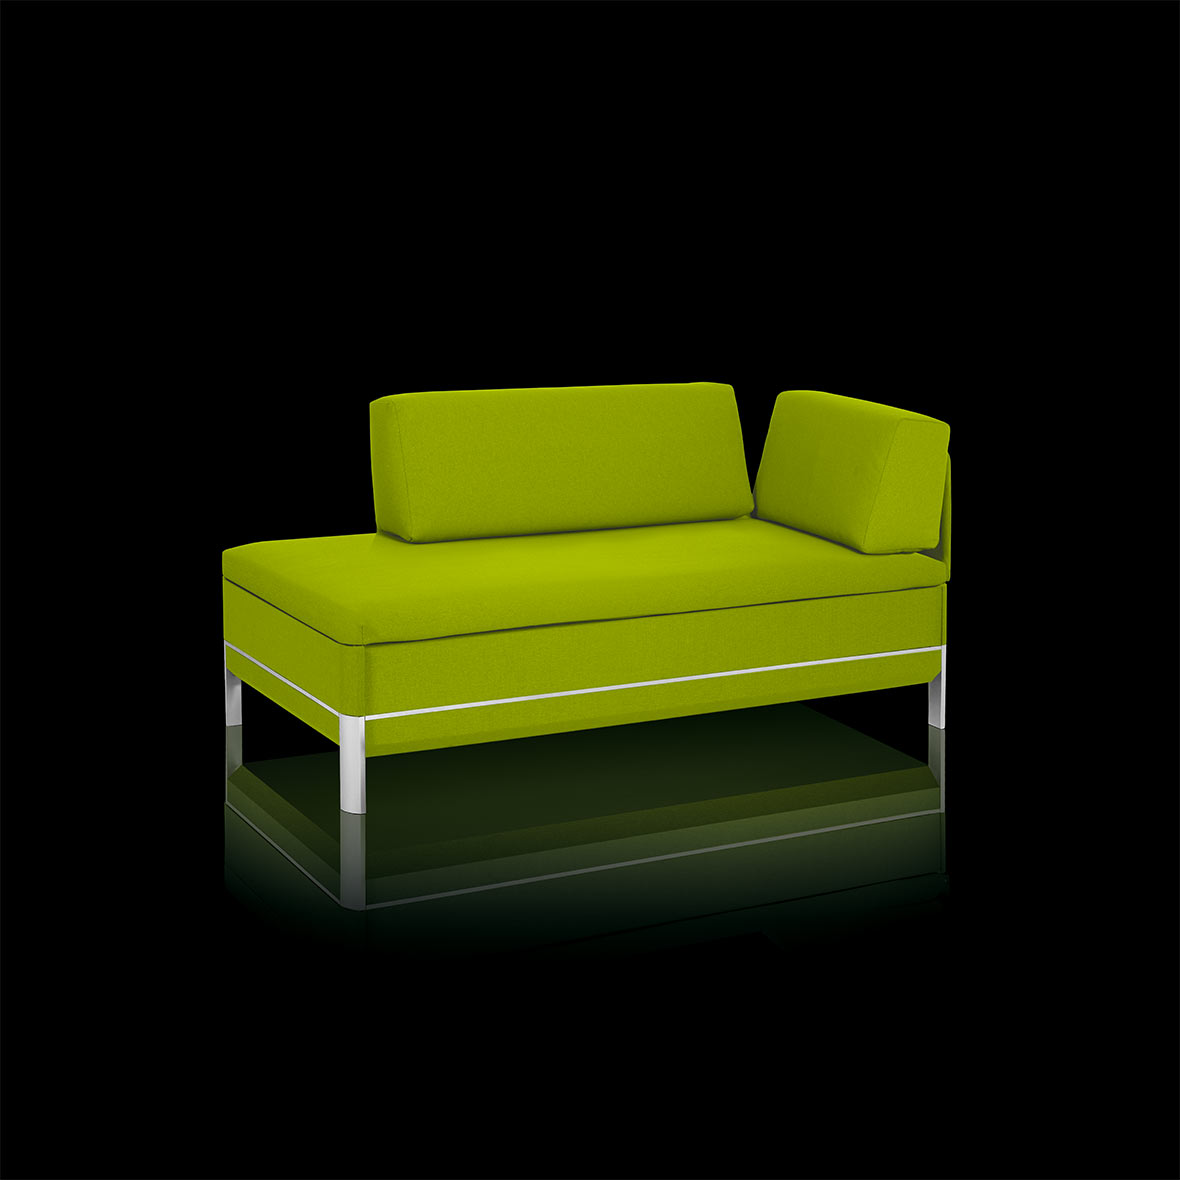 Bettsofa Cento 60 Swiss Plus Bettsofa I Bei Bestswiss